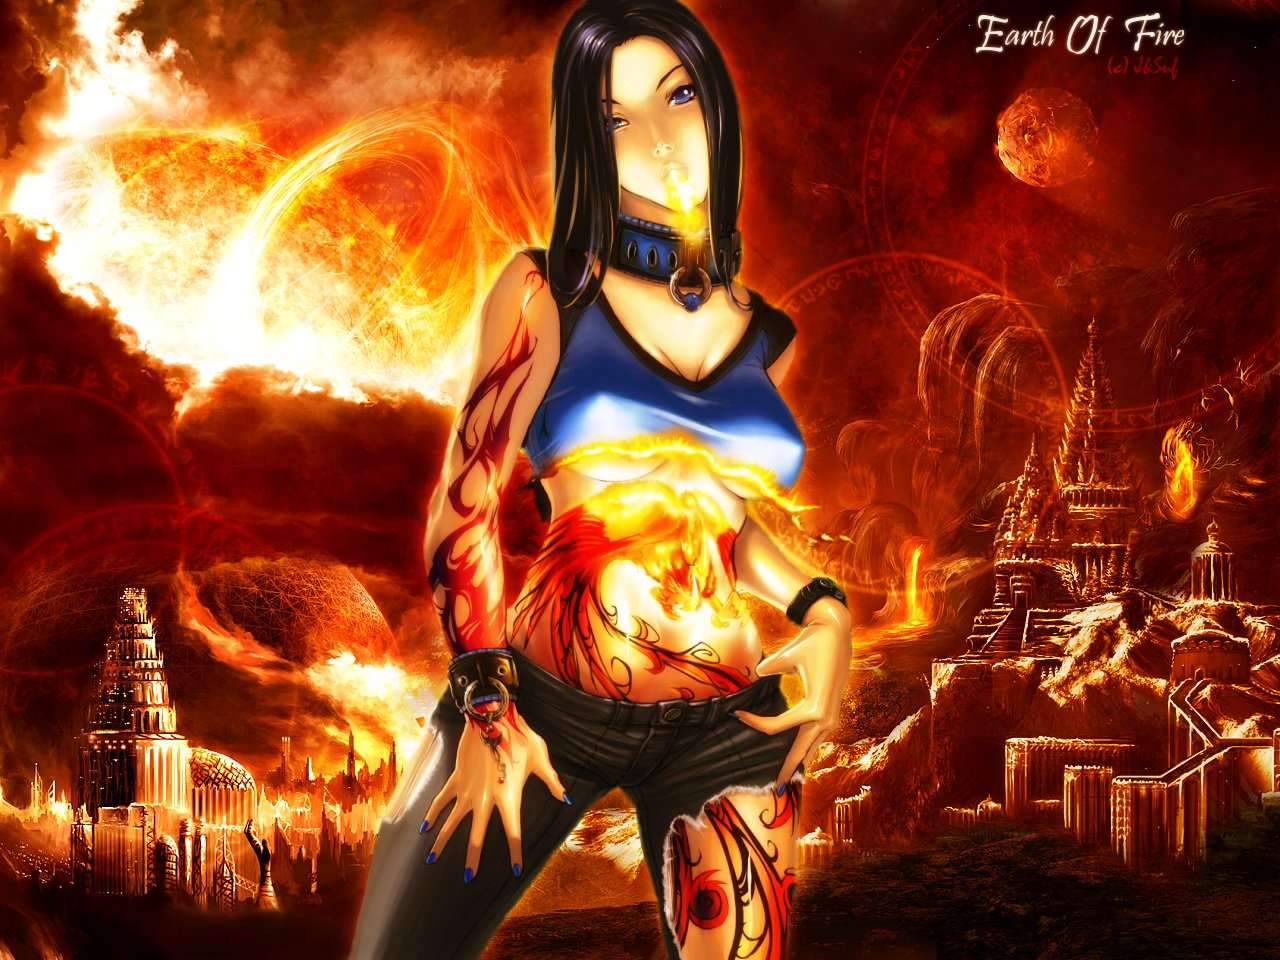 Wallpapers Fantasy and Science Fiction Magicians - Witches Earth Of Fire